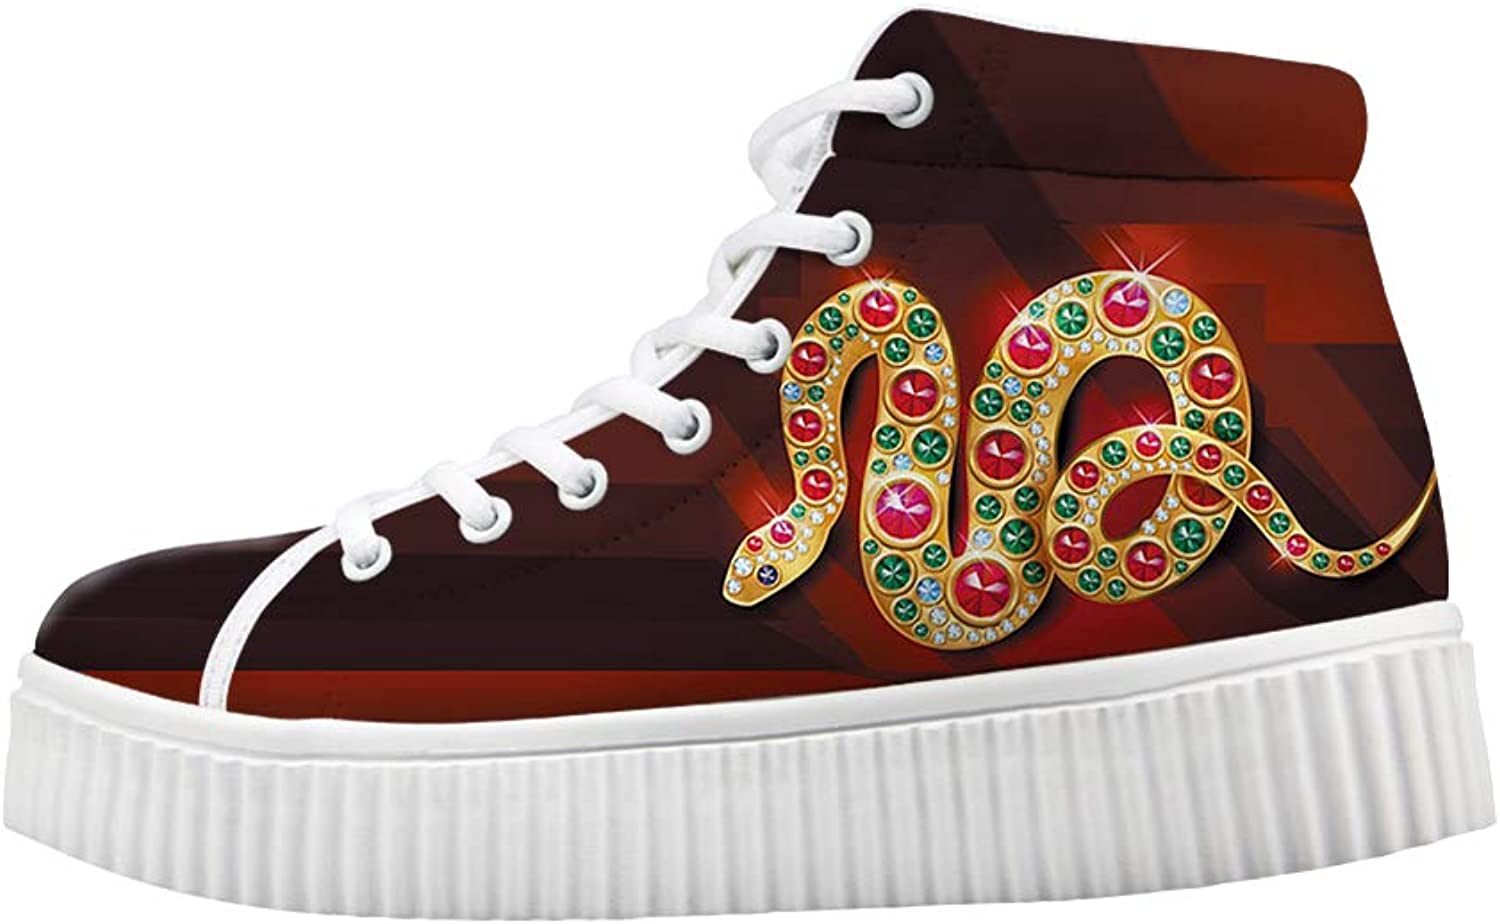 Owaheson Platform Lace up Sneaker Casual Chunky Walking shoes Women Bling Tribe Mysterious gold Gem Snake